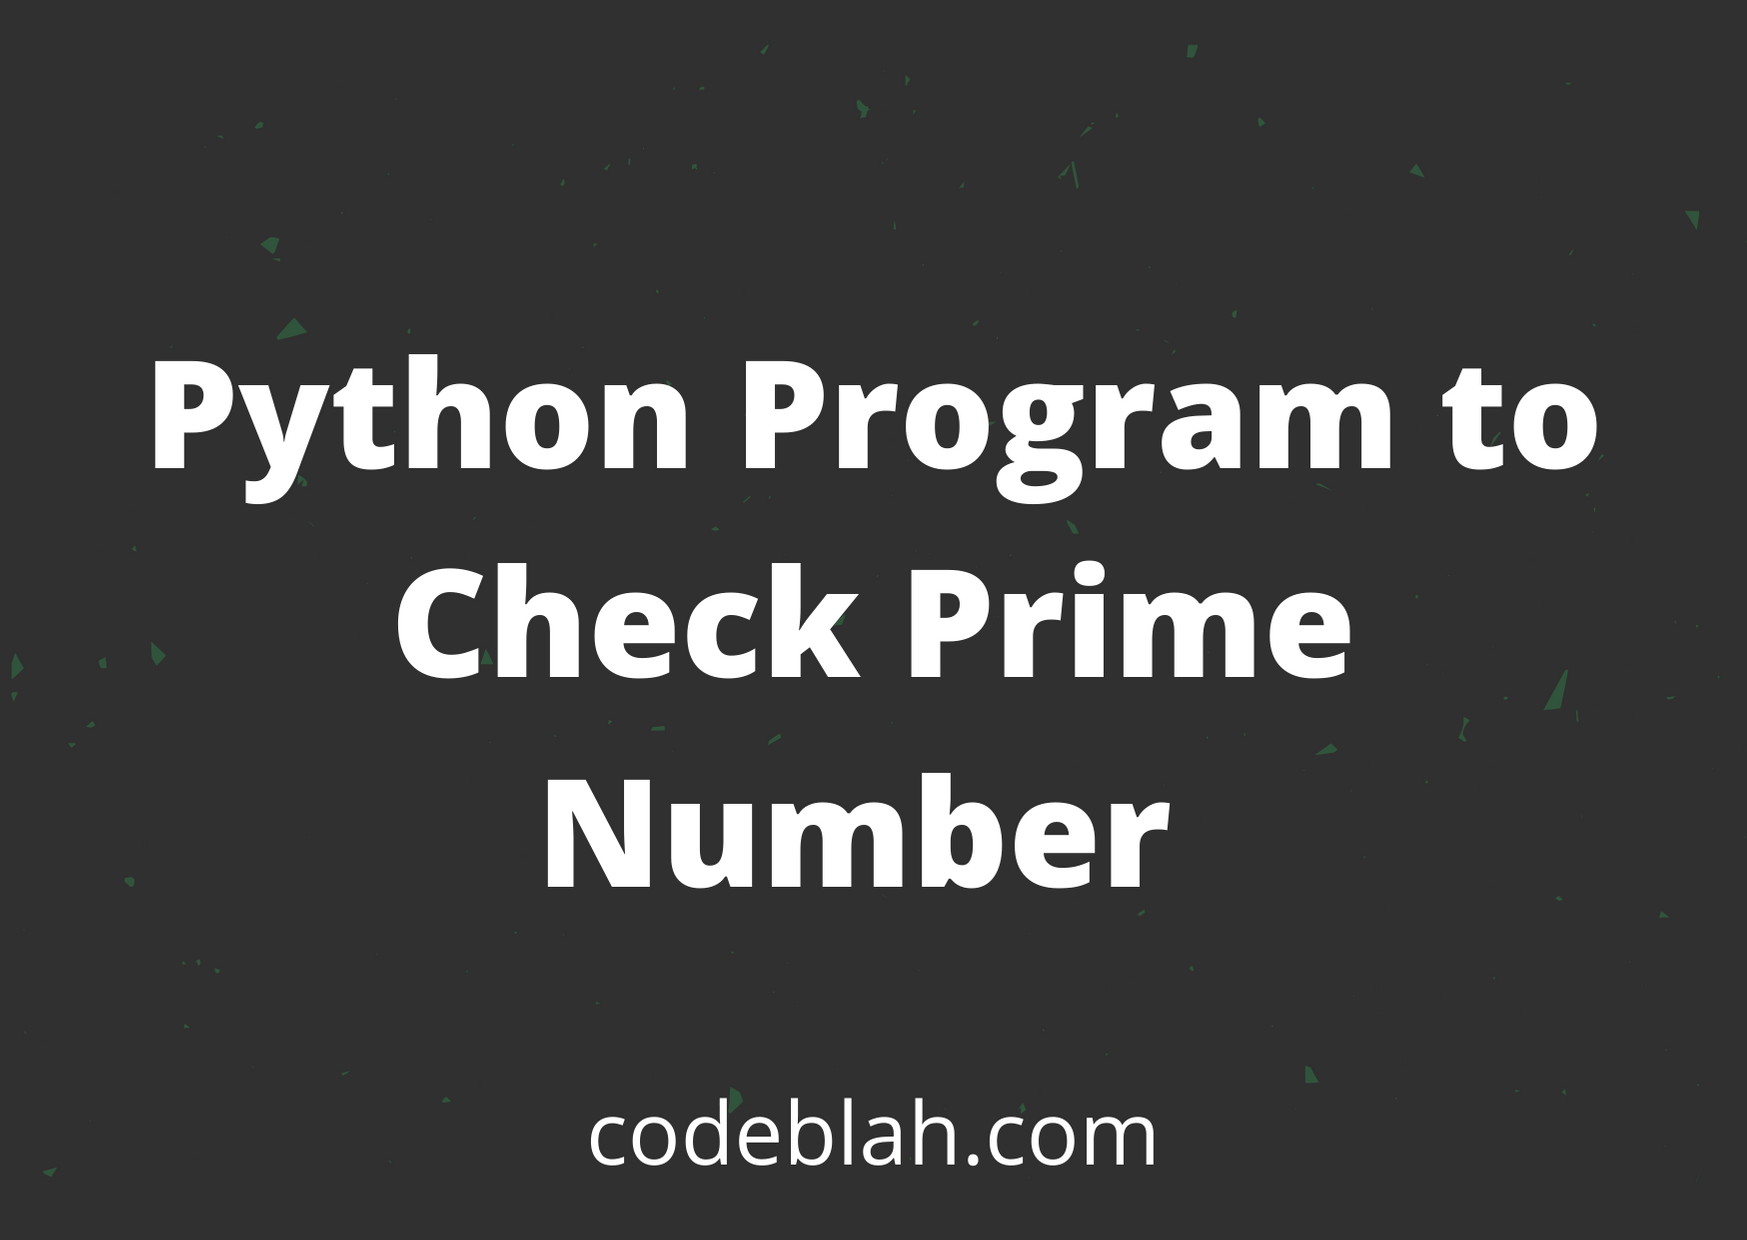 Python Program to Check Prime Number